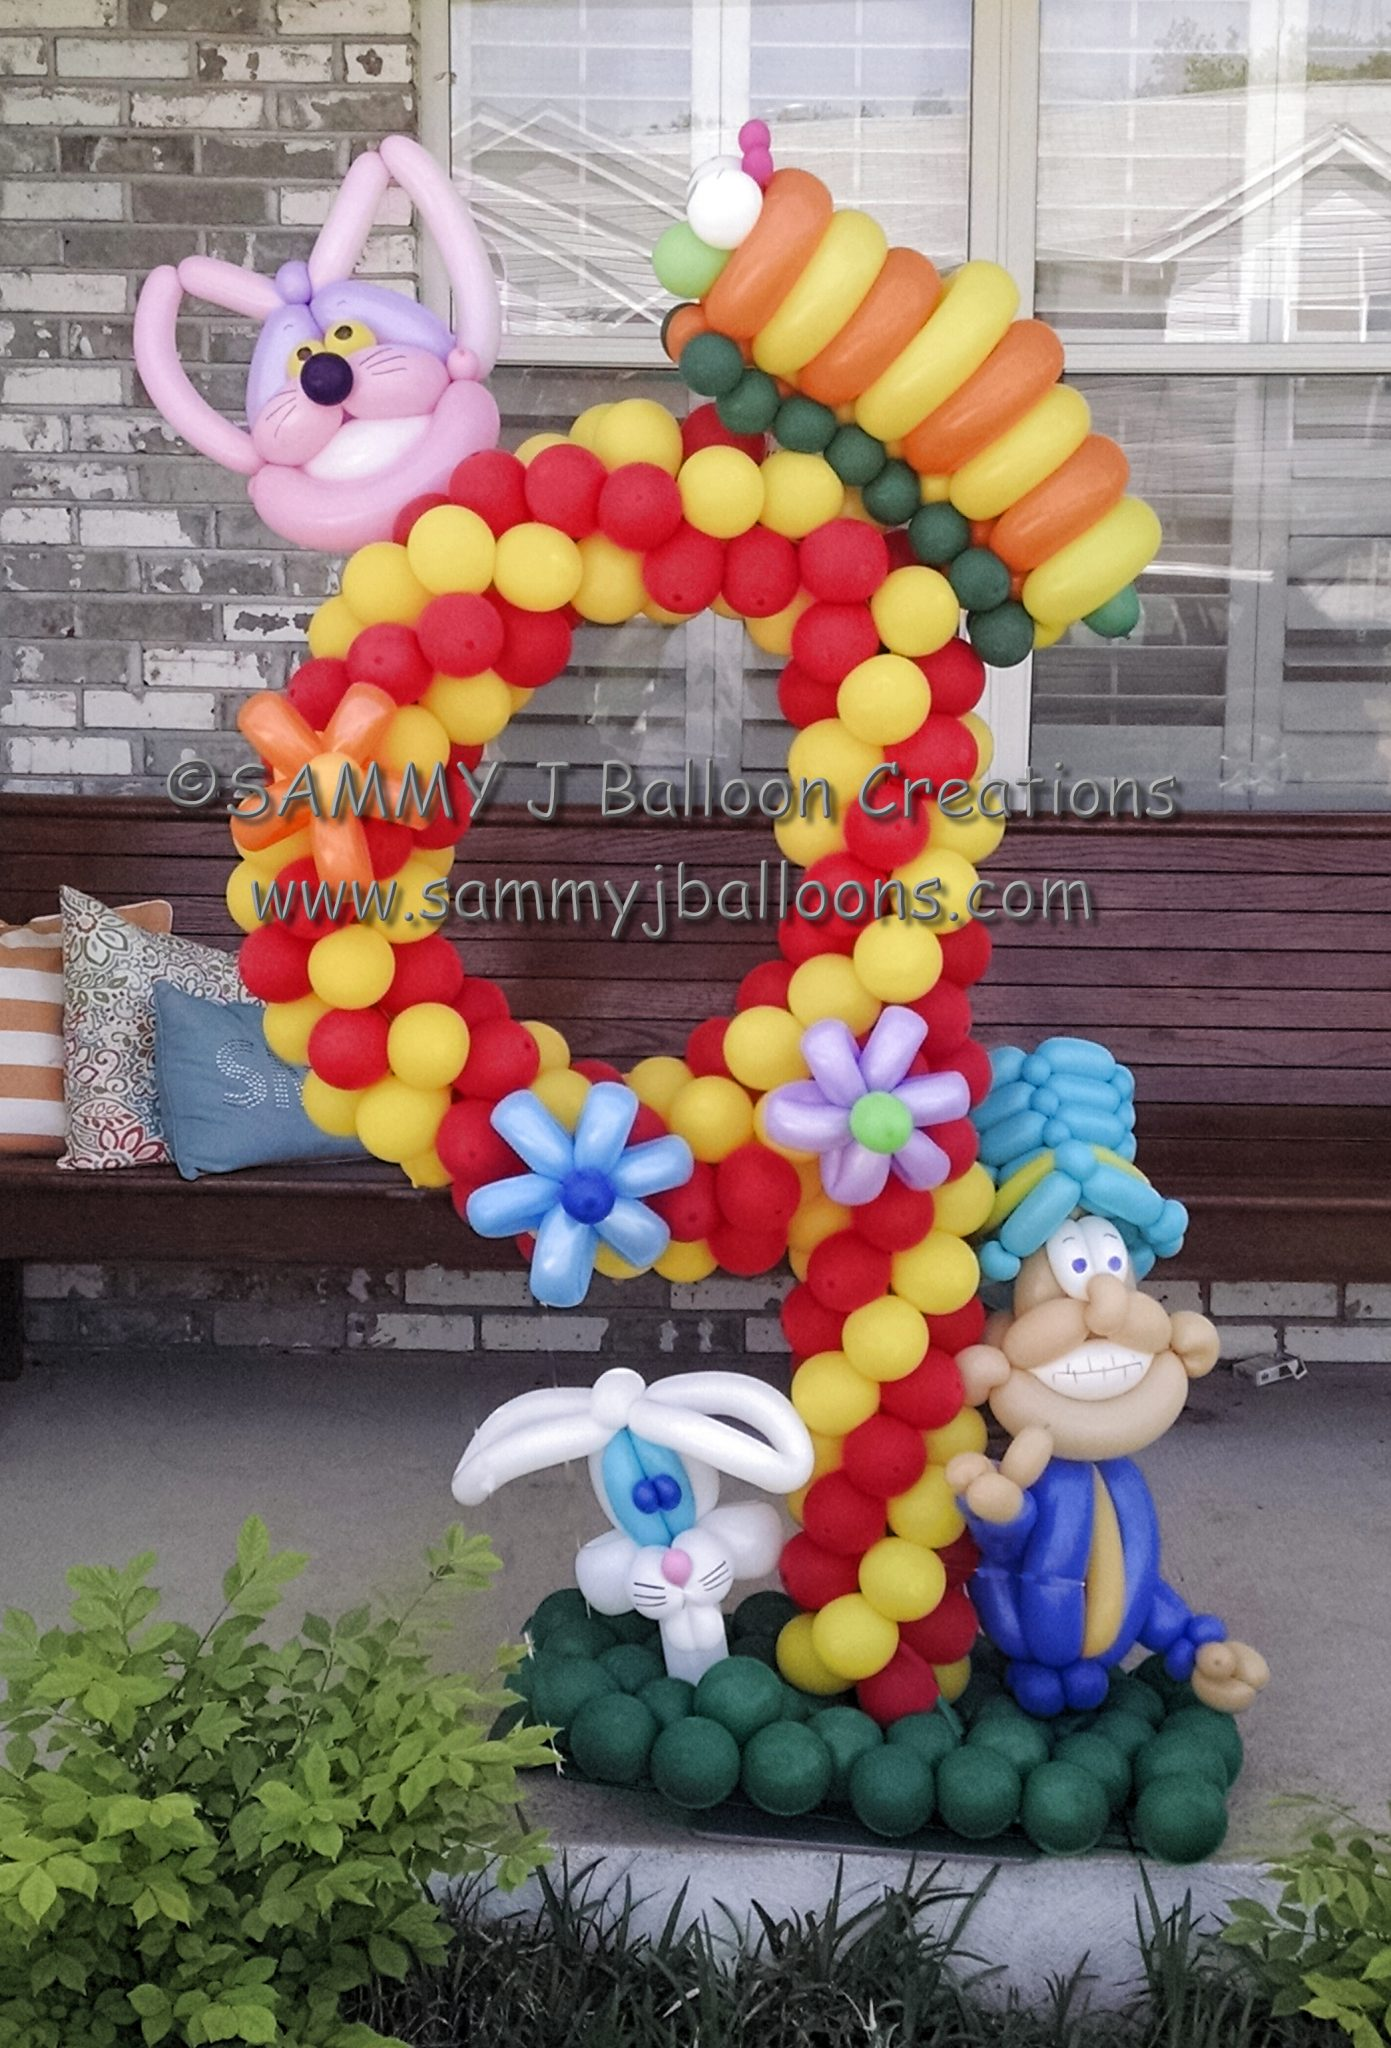 SAMMY J Balloon Creations st louis balloons number nine